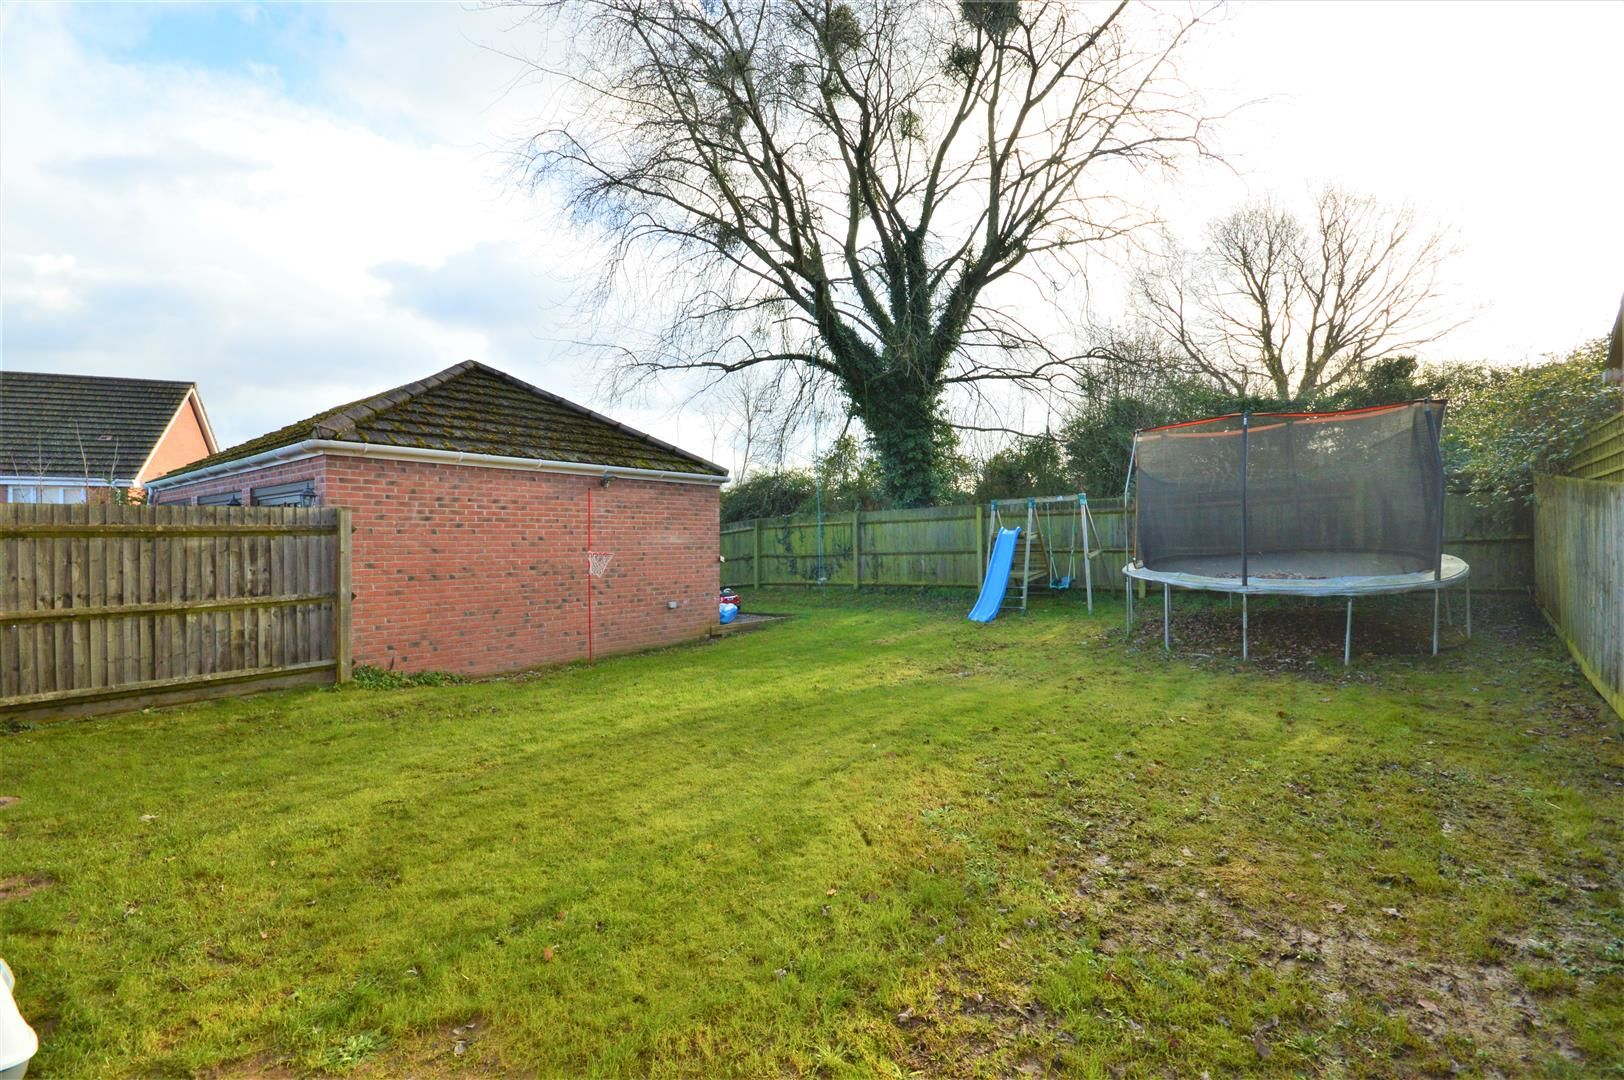 3 bed detached for sale in Hereford 1